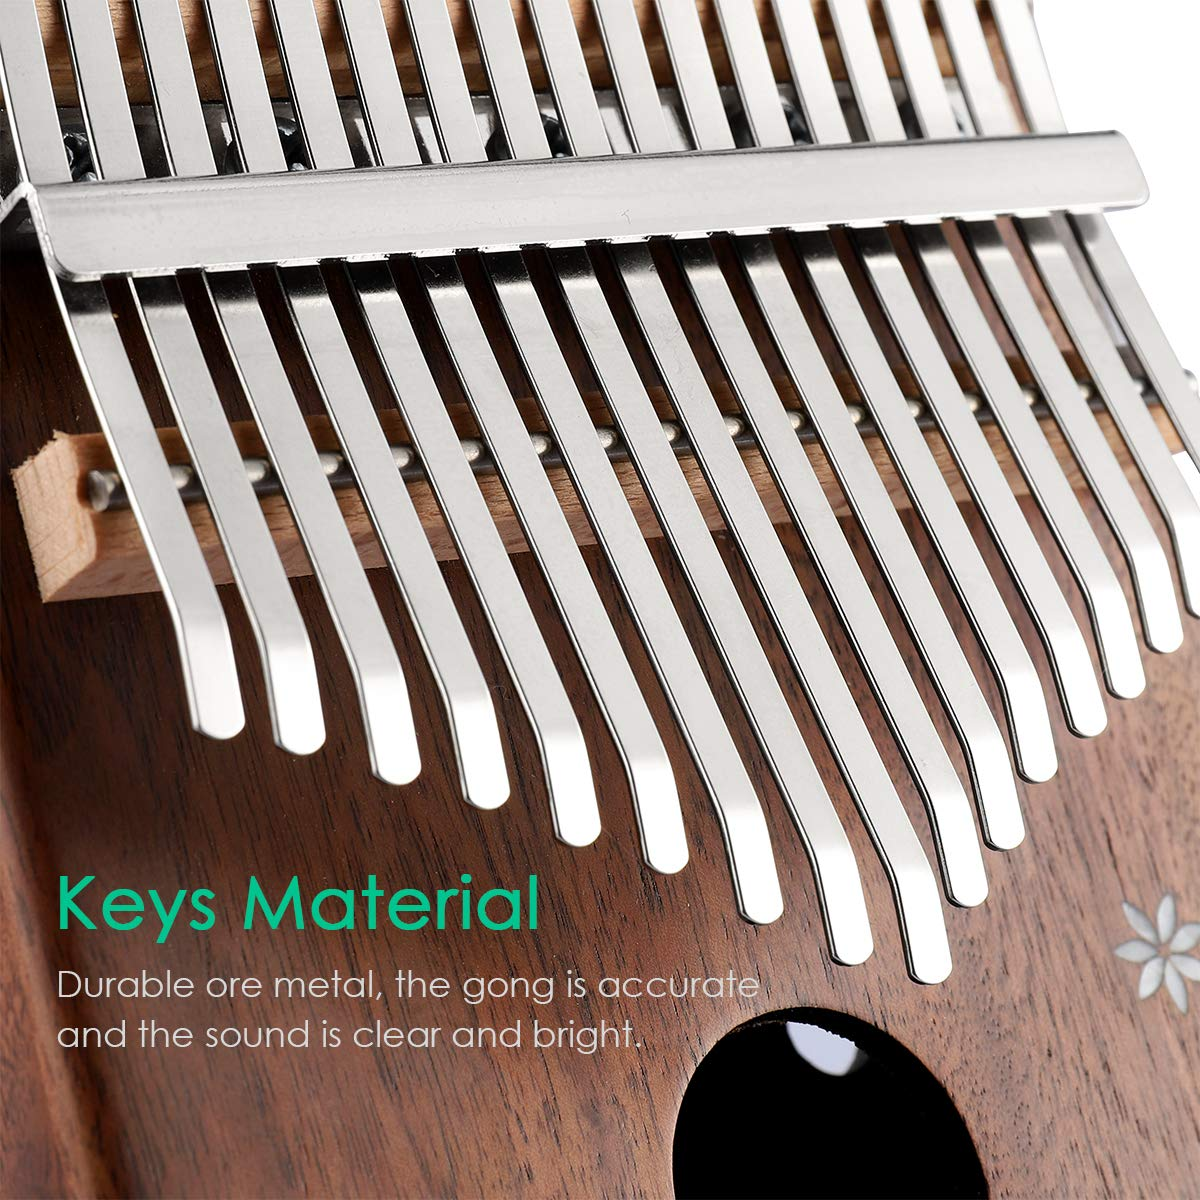 Kalimba 17 Key Thumb Piano Finger Piano Mahogany Wood Body Mbira 17 Tone Musical Instrument for Kids Gift Beginner Musician with Music Book Tune Hammer and Bag by MIFXIN (Image #4)